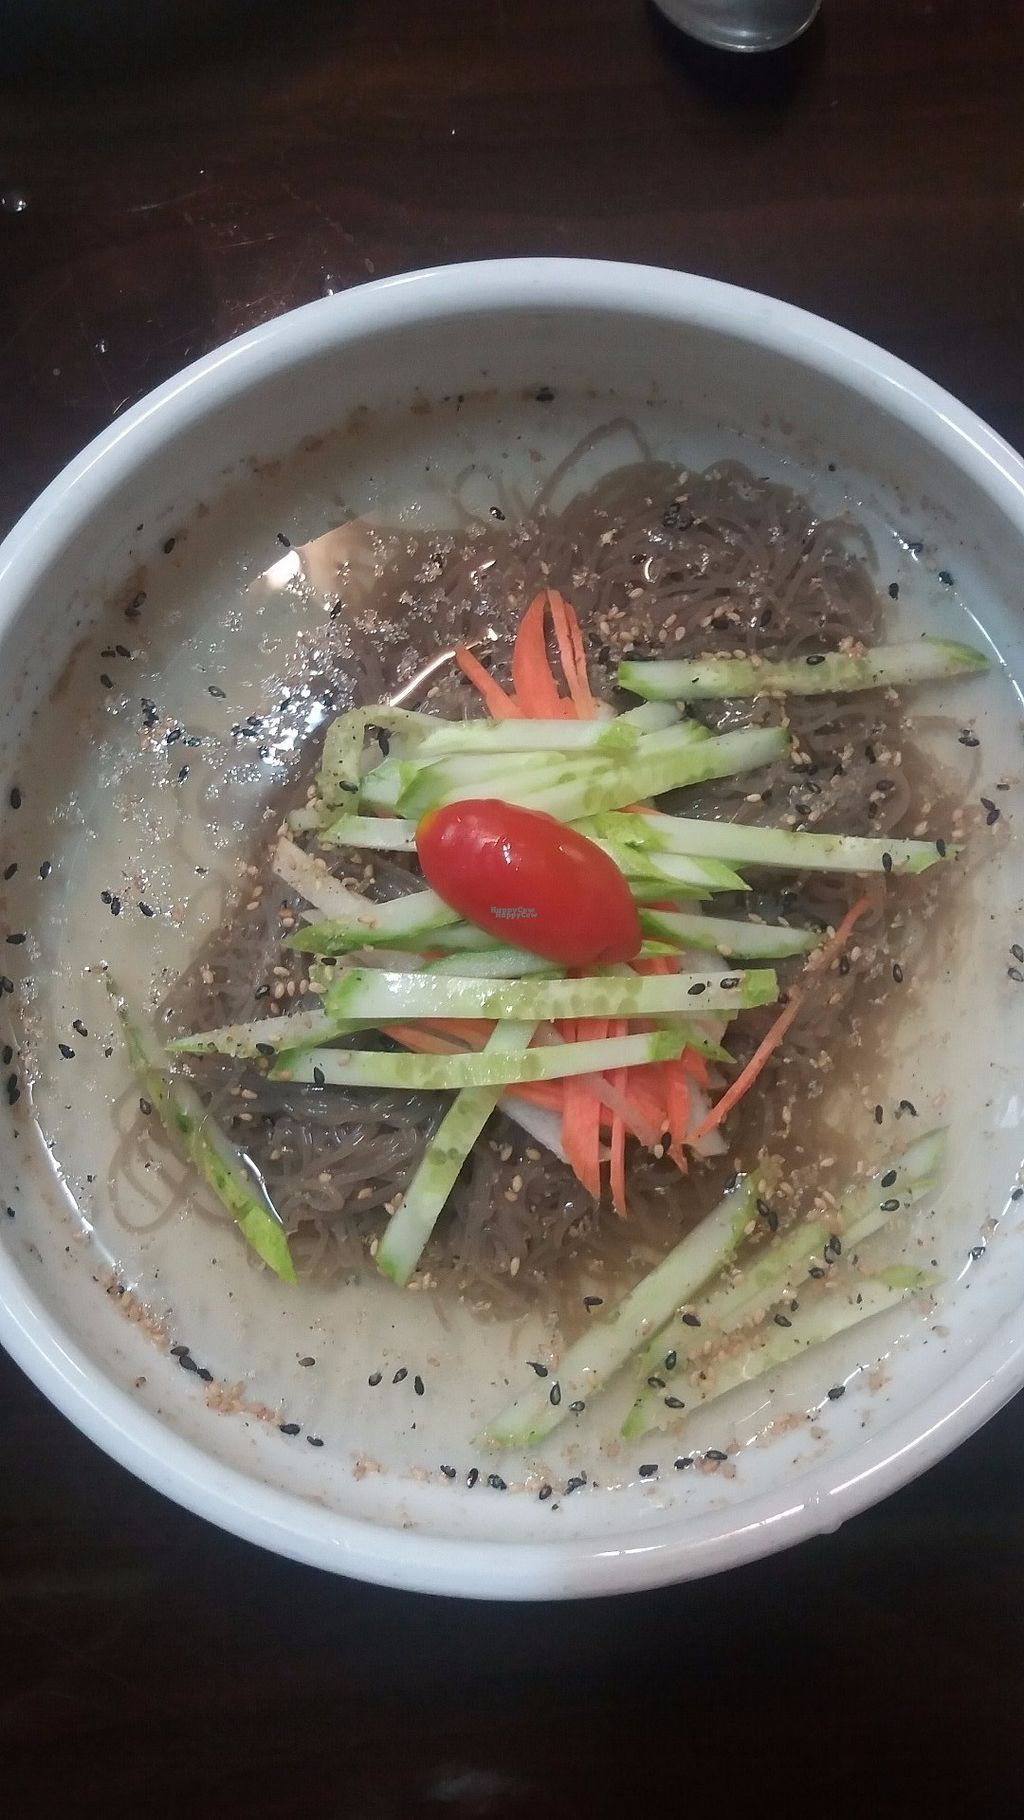 """Photo of Chorokddeul - Green Field - 초록뜰식당  by <a href=""""/members/profile/rburrke"""">rburrke</a> <br/>Cold noodle soup is perfect on a hot day <br/> October 10, 2016  - <a href='/contact/abuse/image/64286/180955'>Report</a>"""